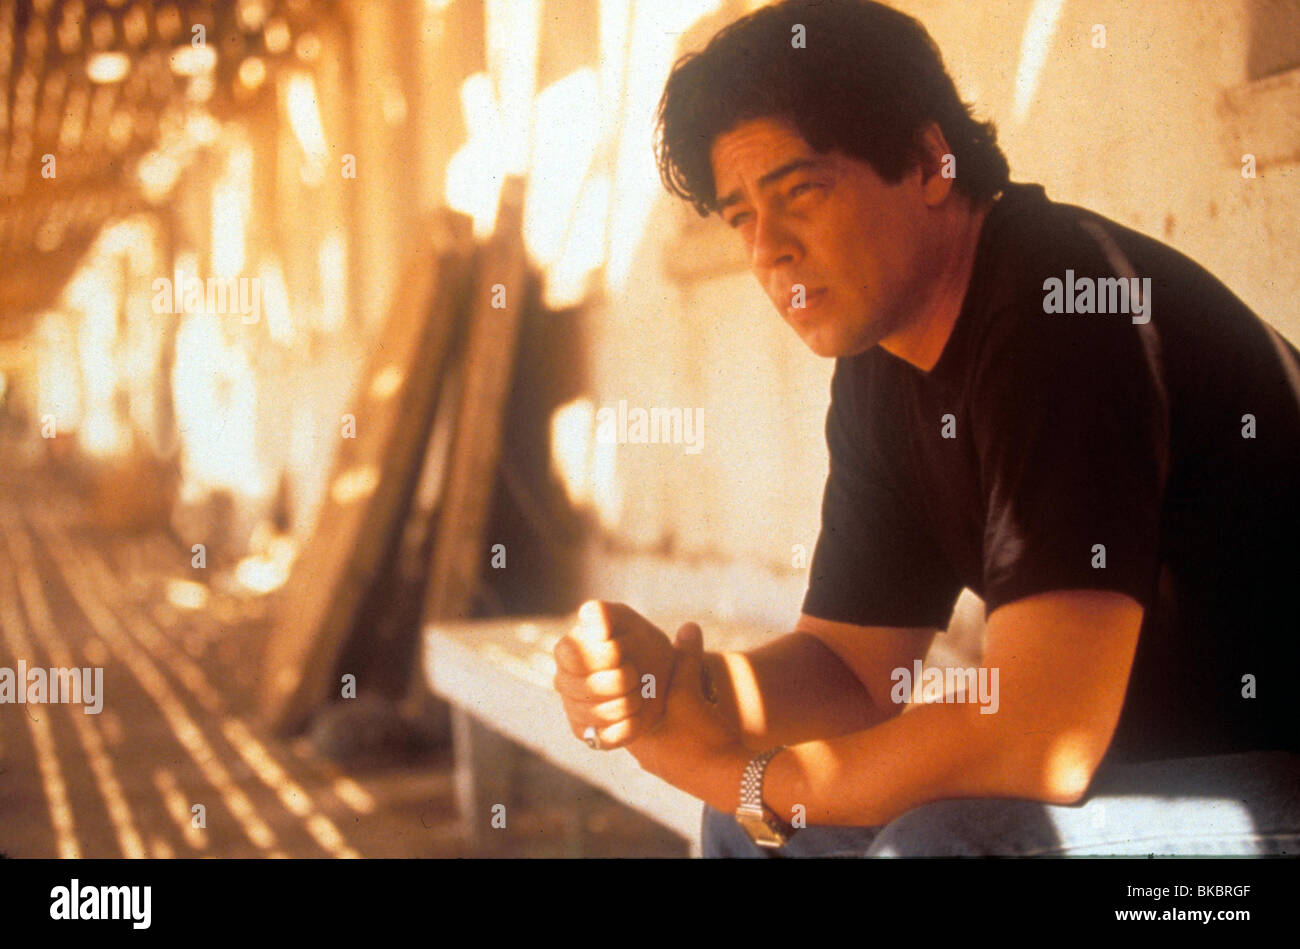 Traffic 2000 Benicio Del Toro Traf 029 Ltd Stock Photo Alamy